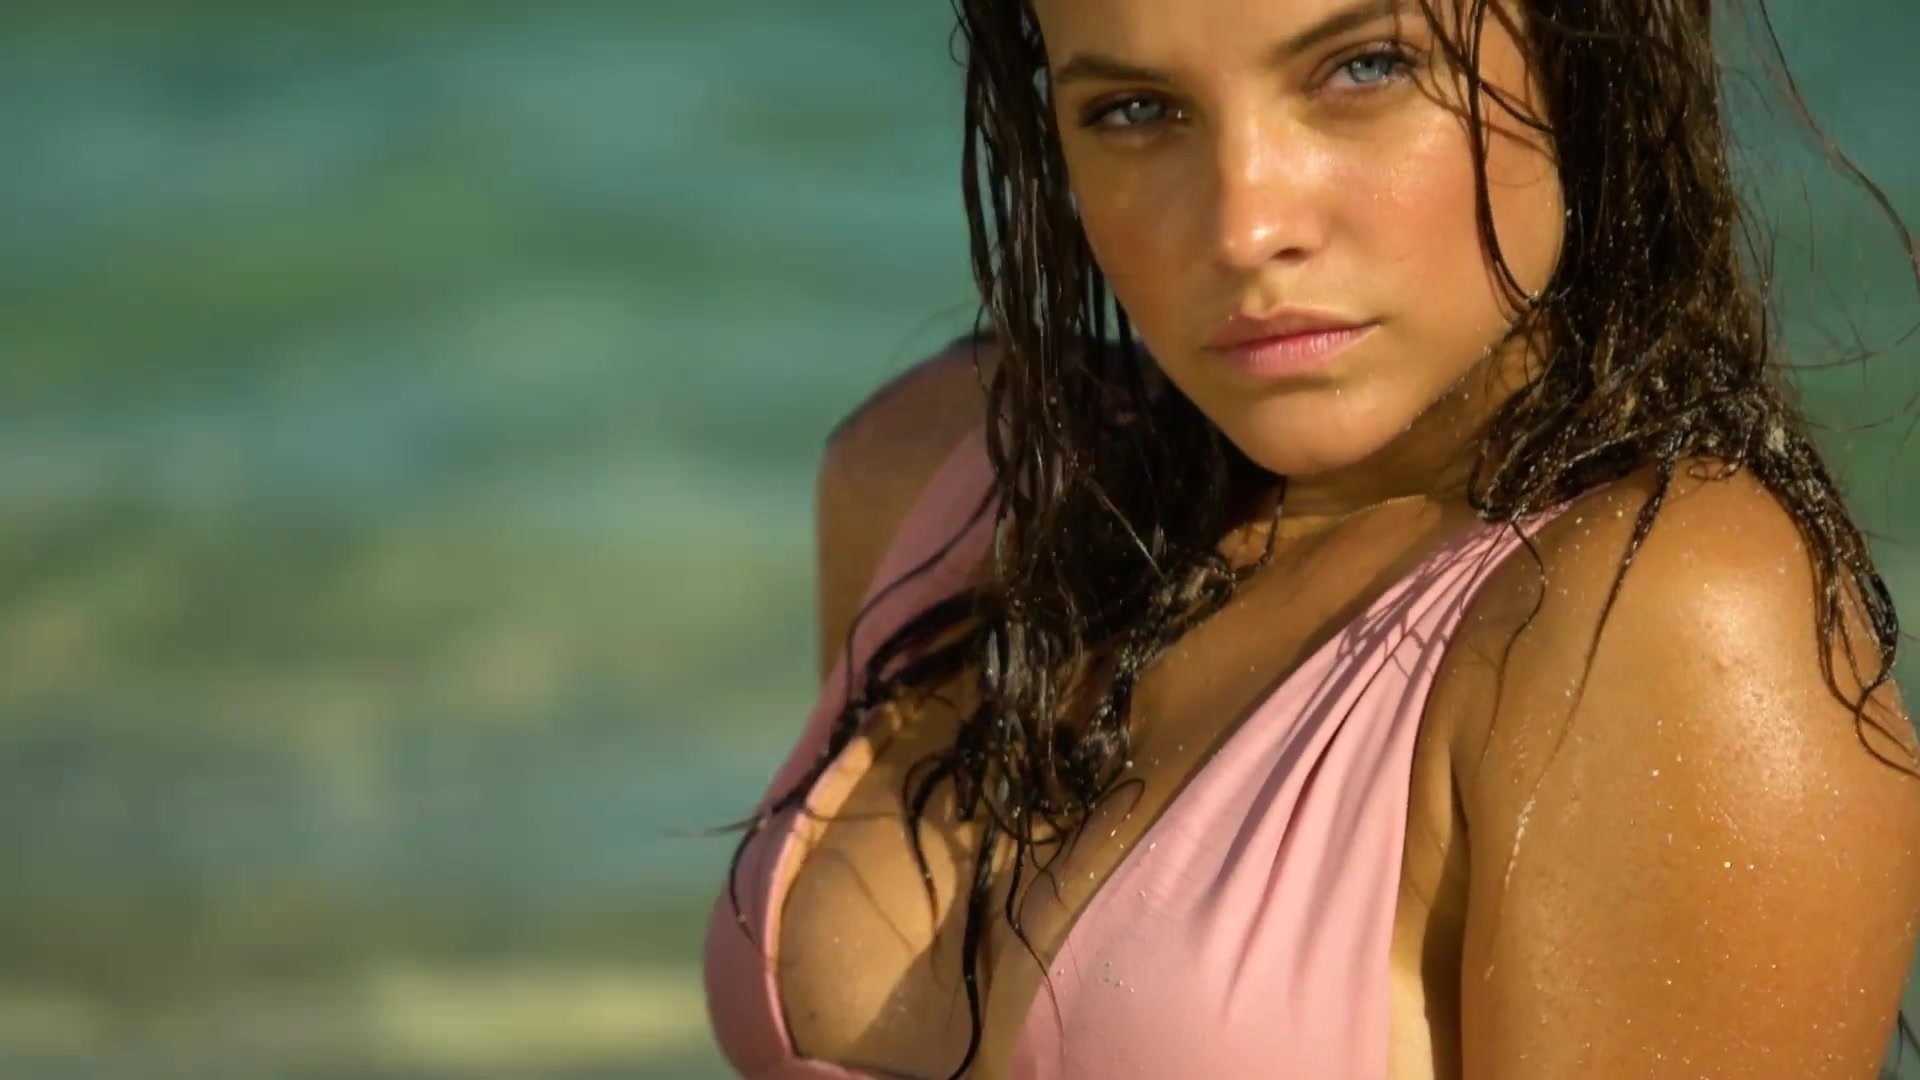 Sports Illustrated Swimsuit Wallpaper 1920x1080 ·①